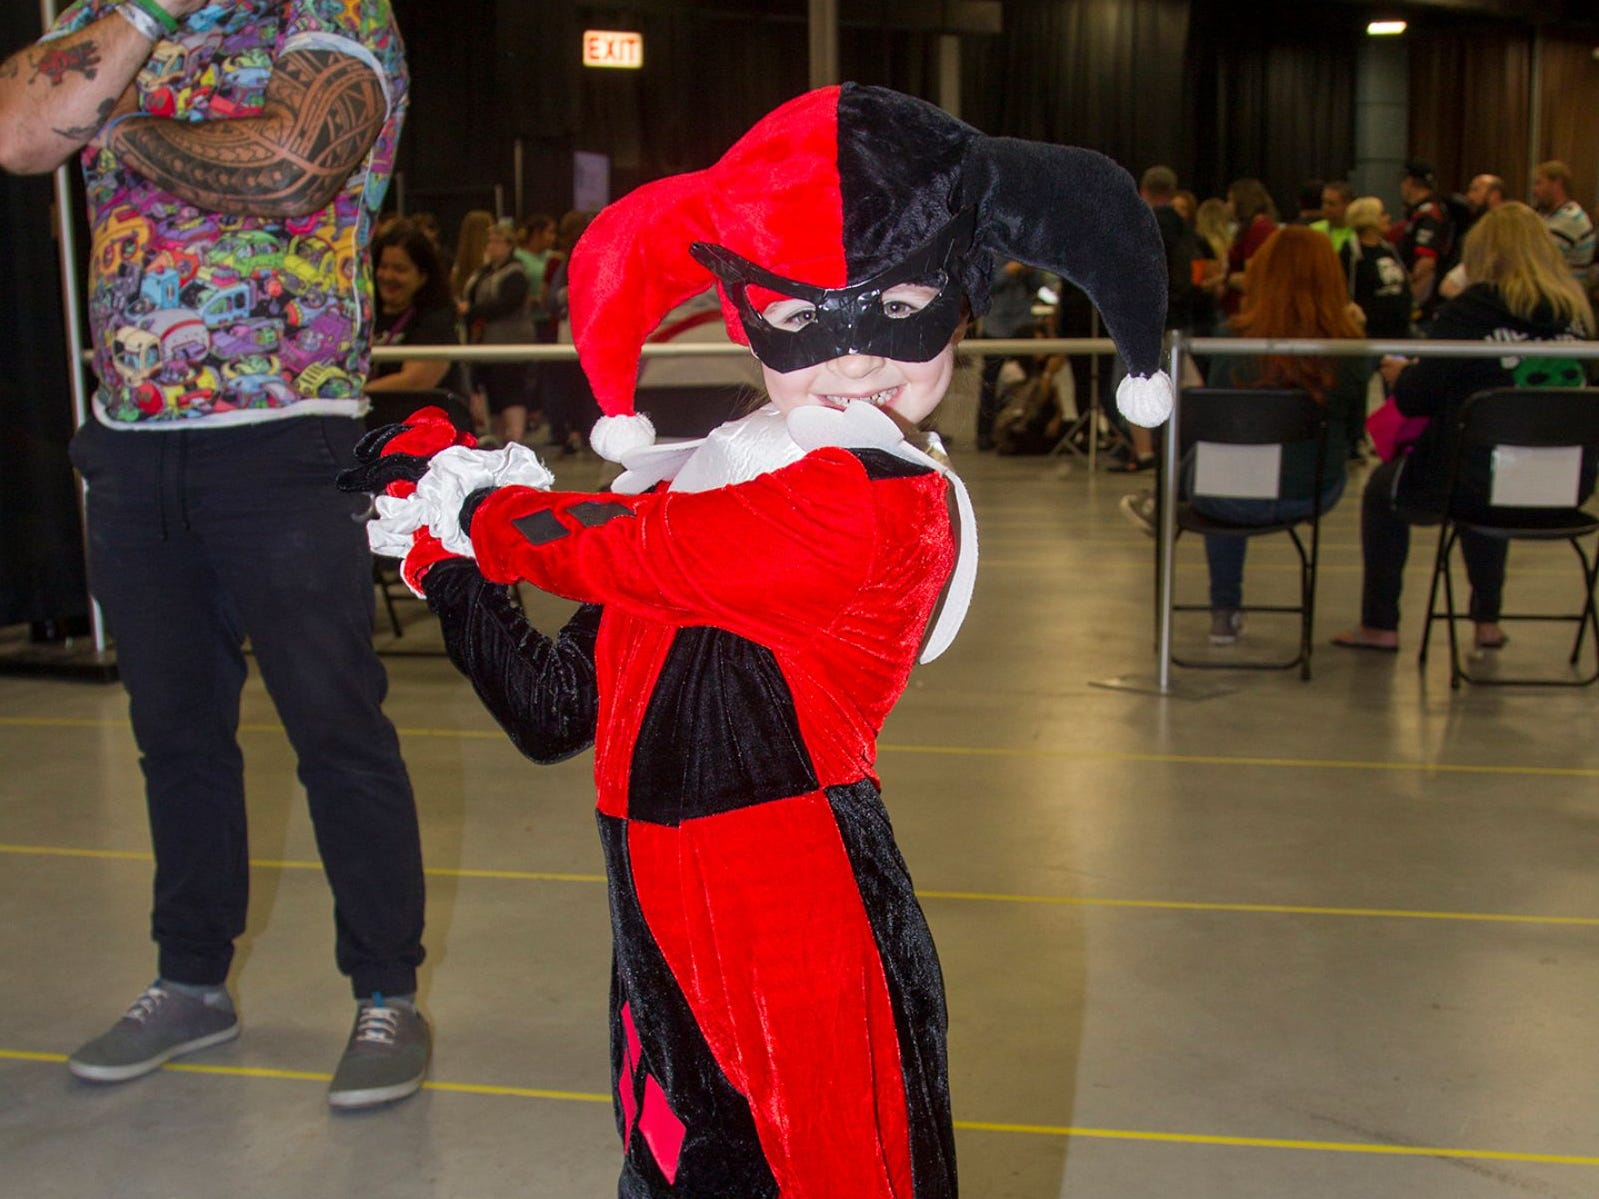 Teresa as Harley Quinn. The 2018 Heroes and Villains Fan Fest took place at the New Jersey Convention & Expo Center. 09/09/2018